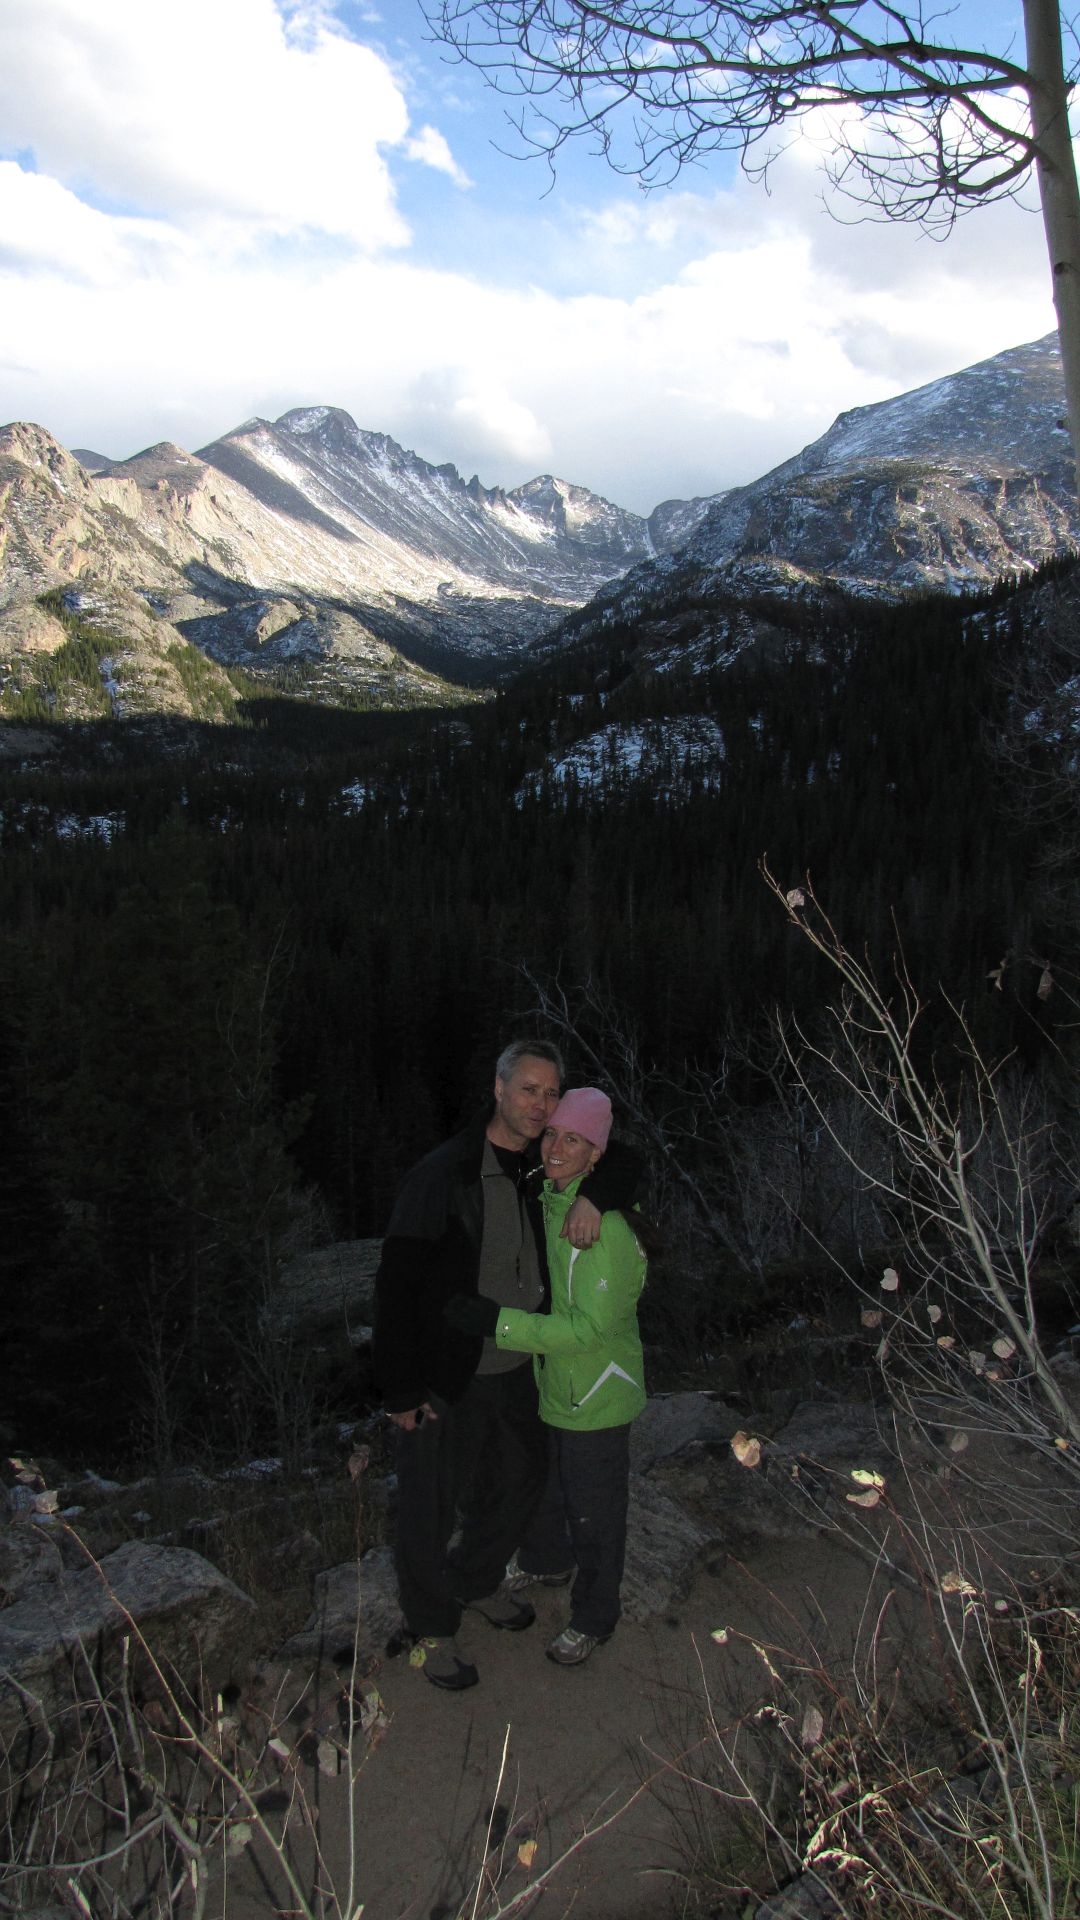 Nr Bear Lake, Rocky Mtn Nat Pk, CO, USA - Yes, flash used to get both halves of pic lit!